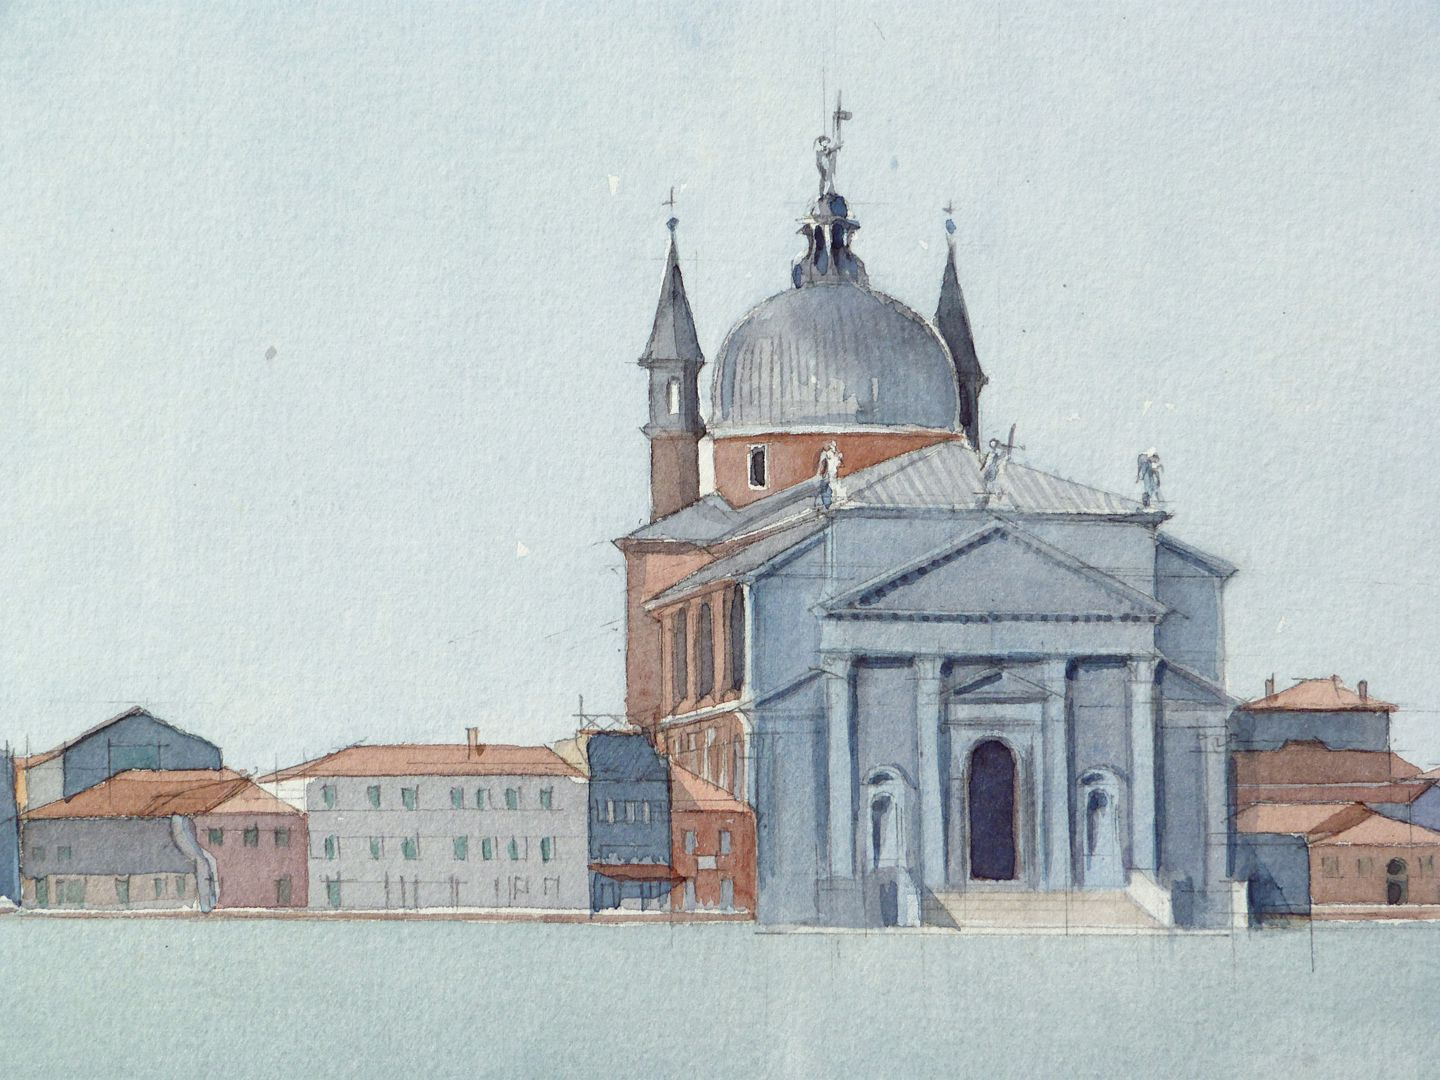 Il Redentore (Venice) Situation on the bank with church building by Andrea Palladio